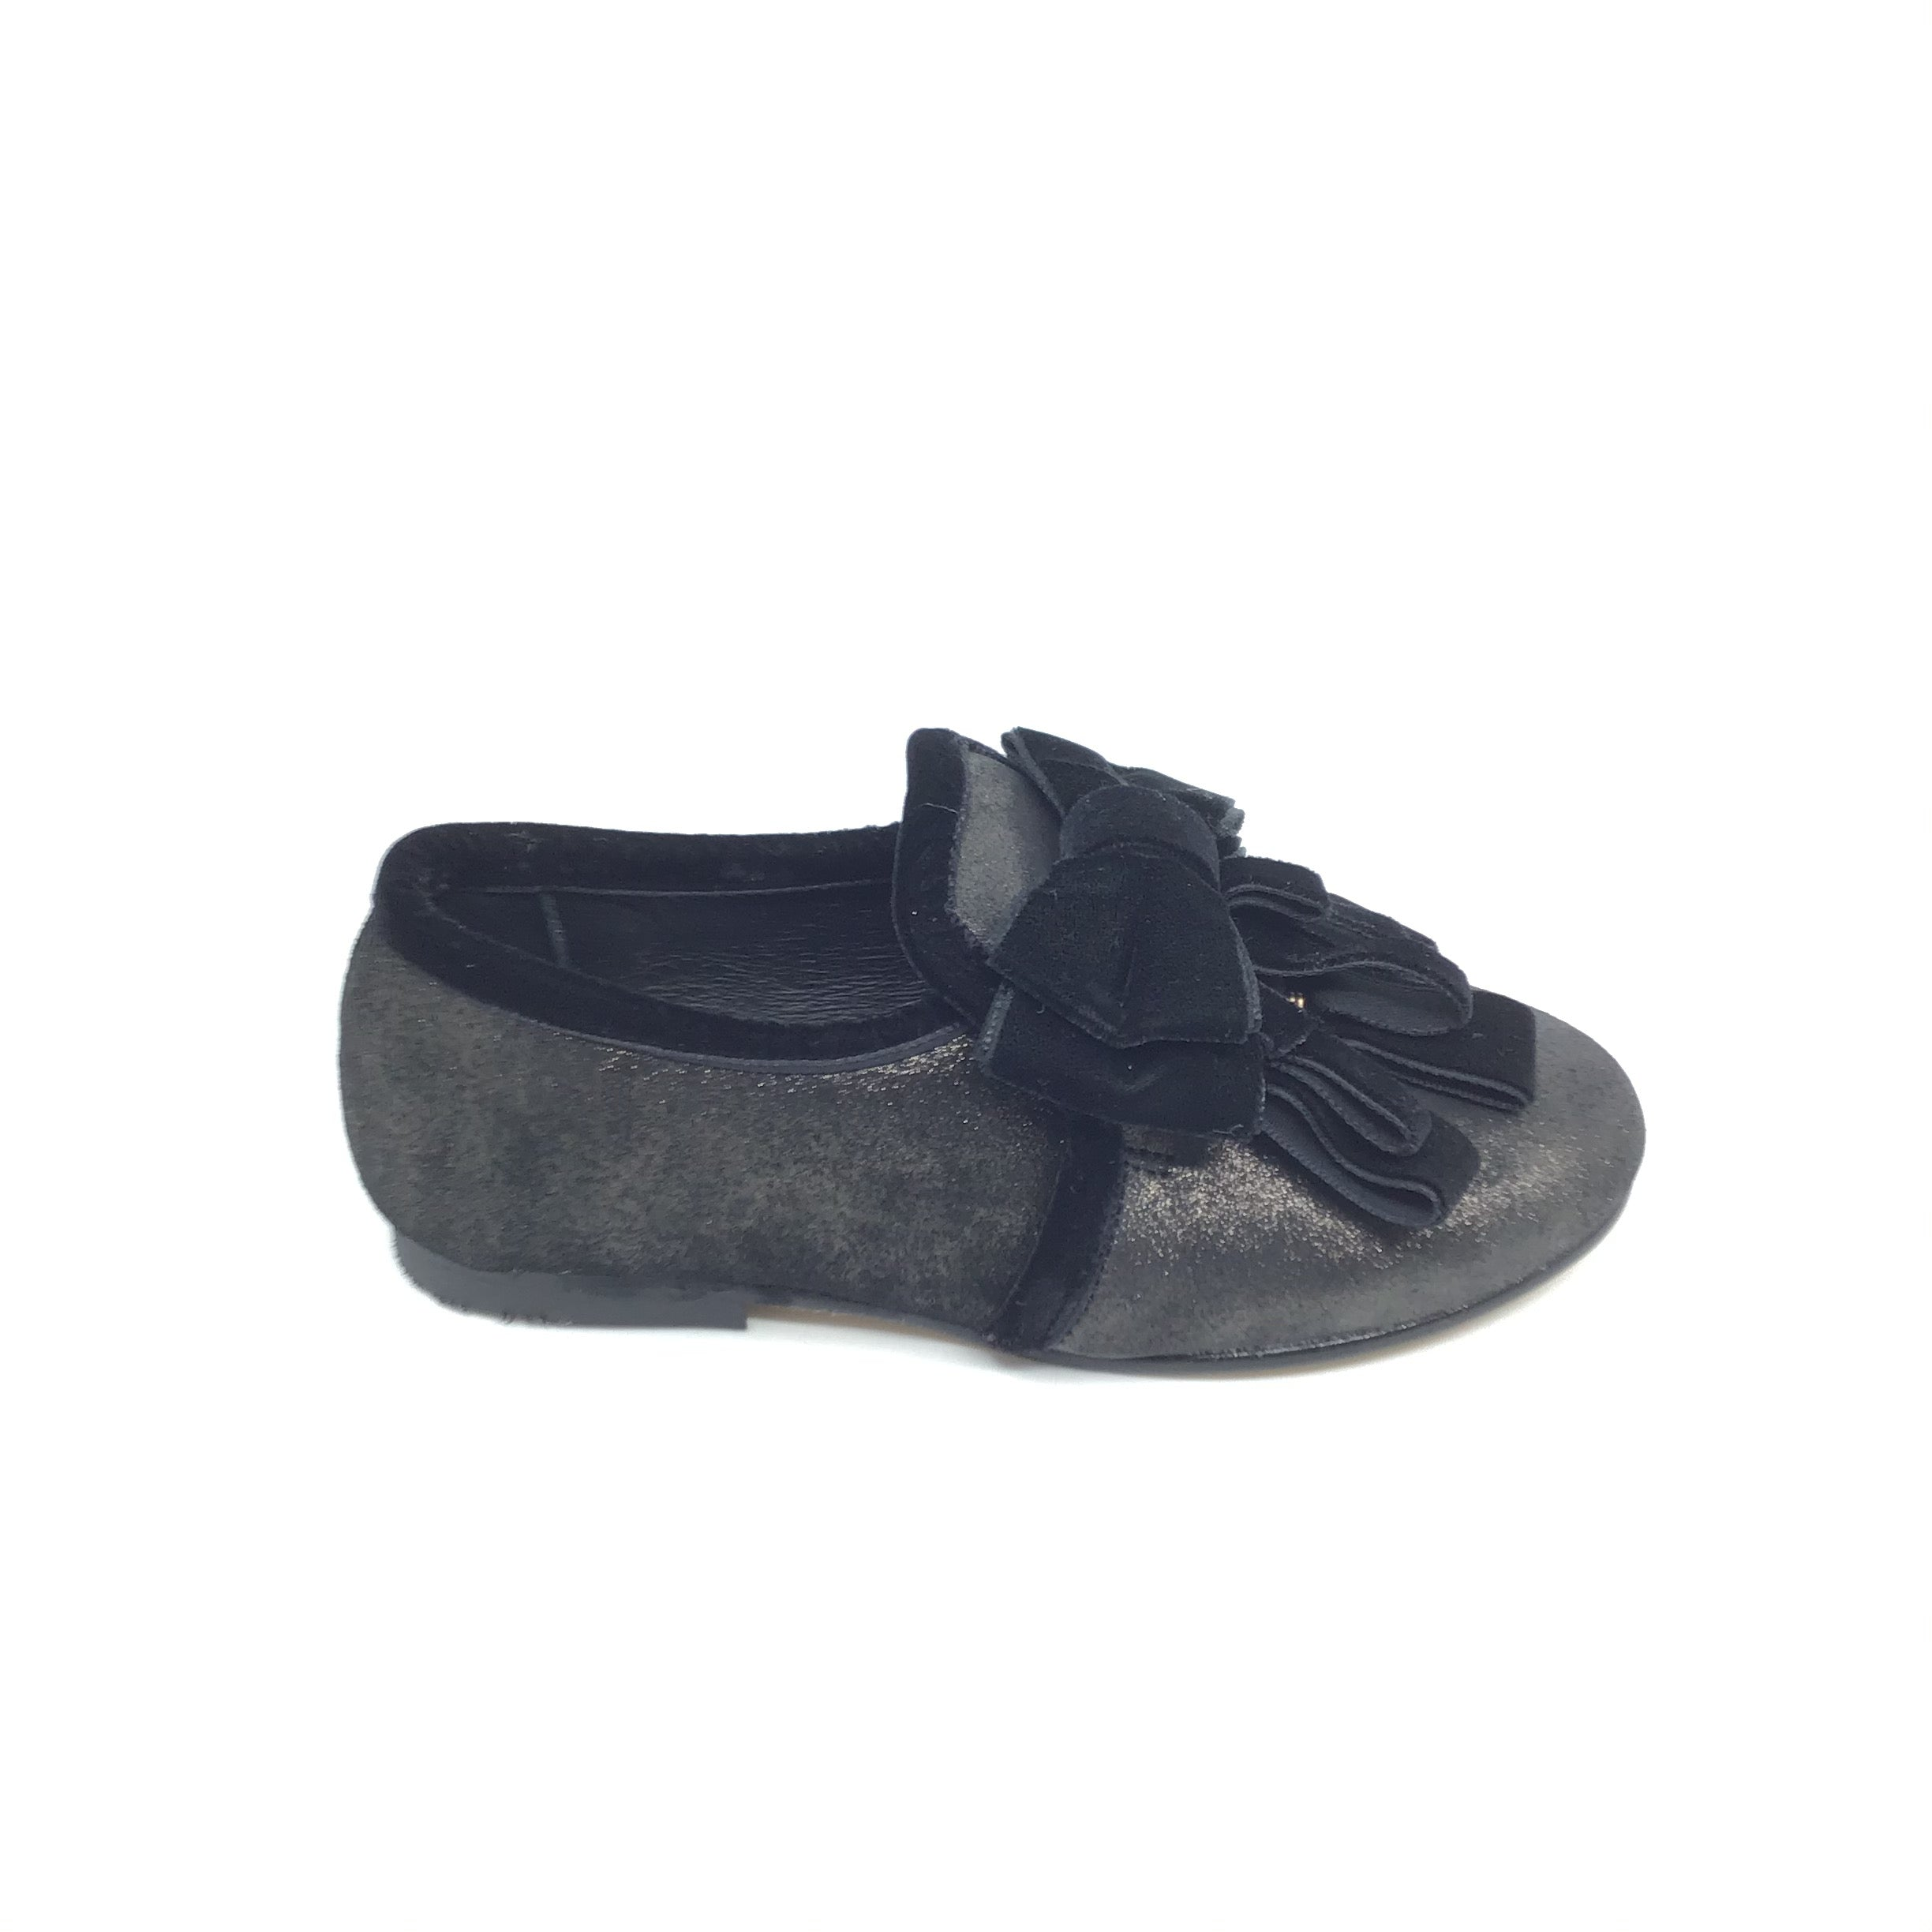 Luccini Gray Slip On with Black Velvet Bow